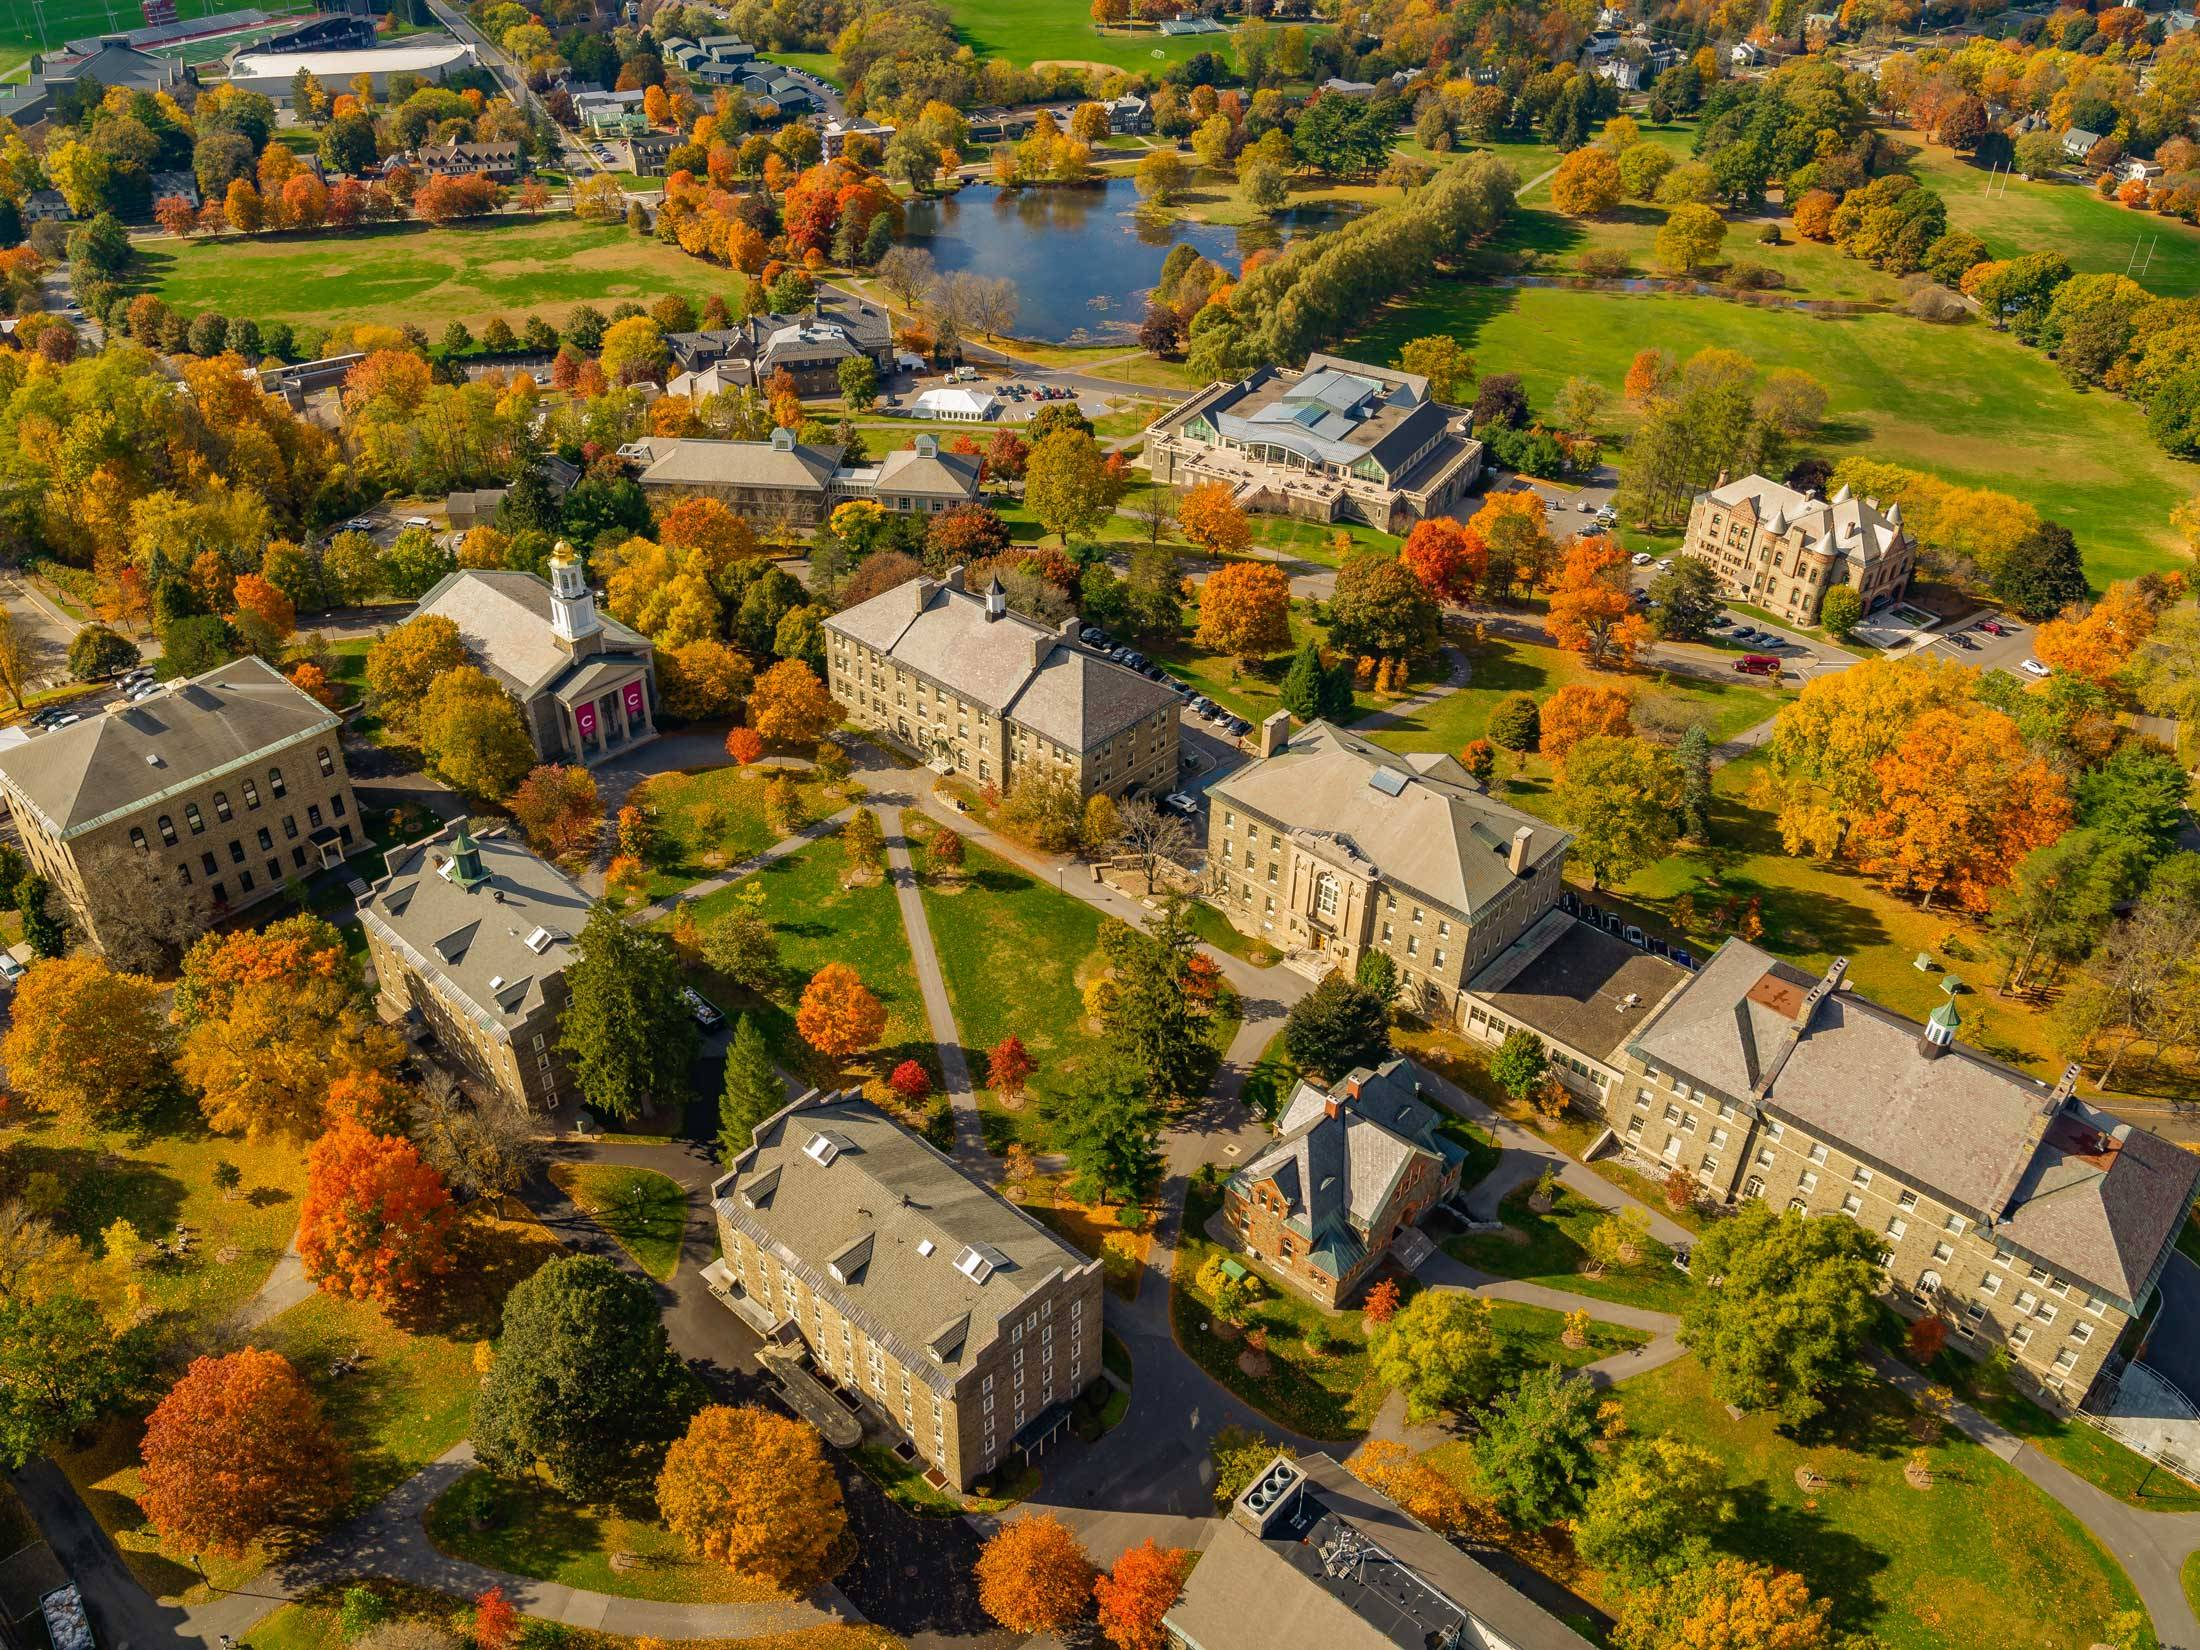 Campus from above in autumn